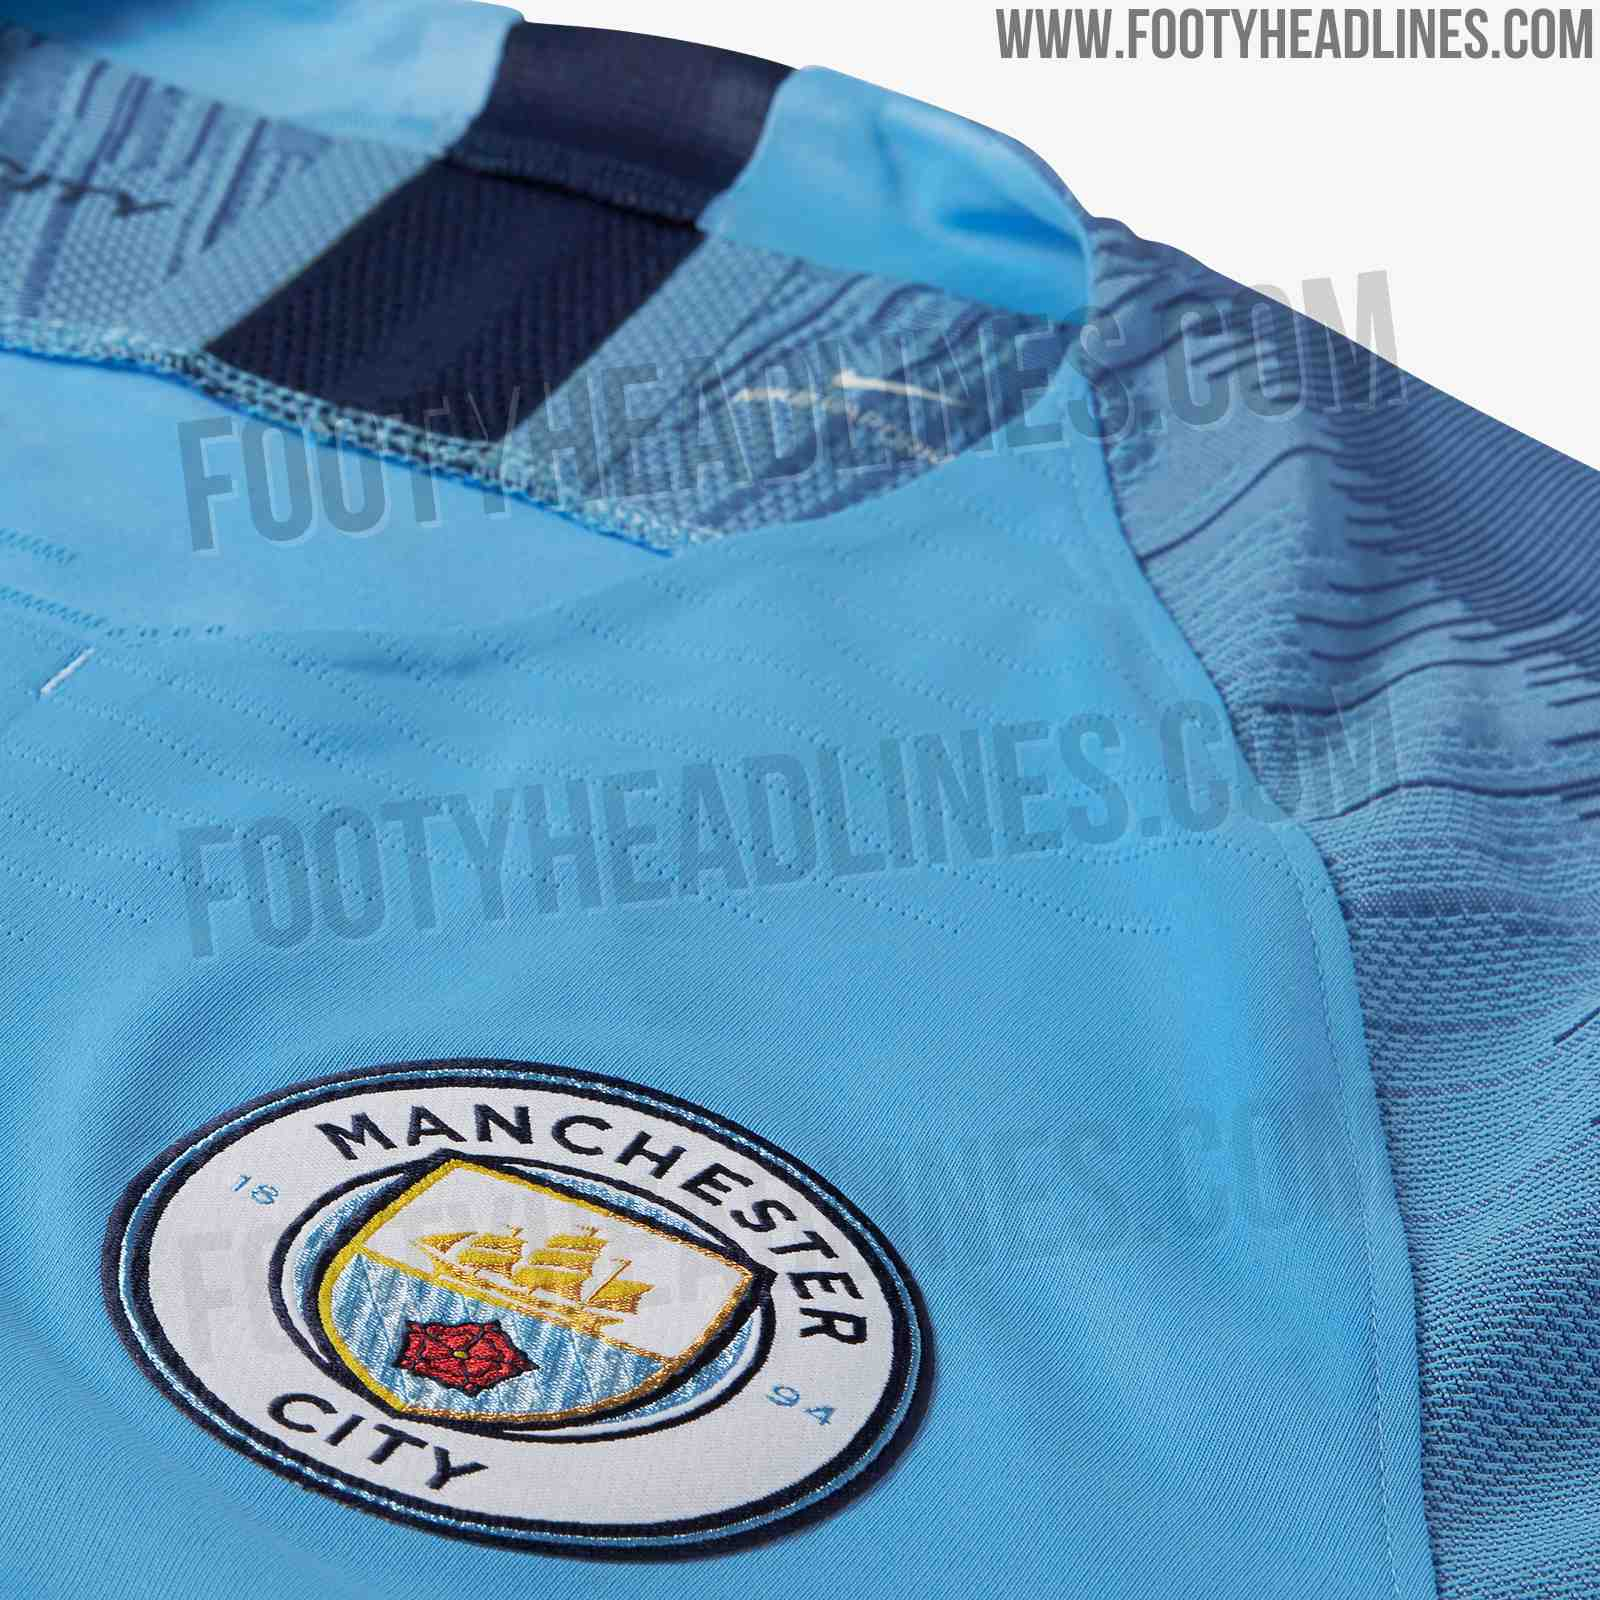 Manchester City 18 19 Home Kit Released Footy Headlines